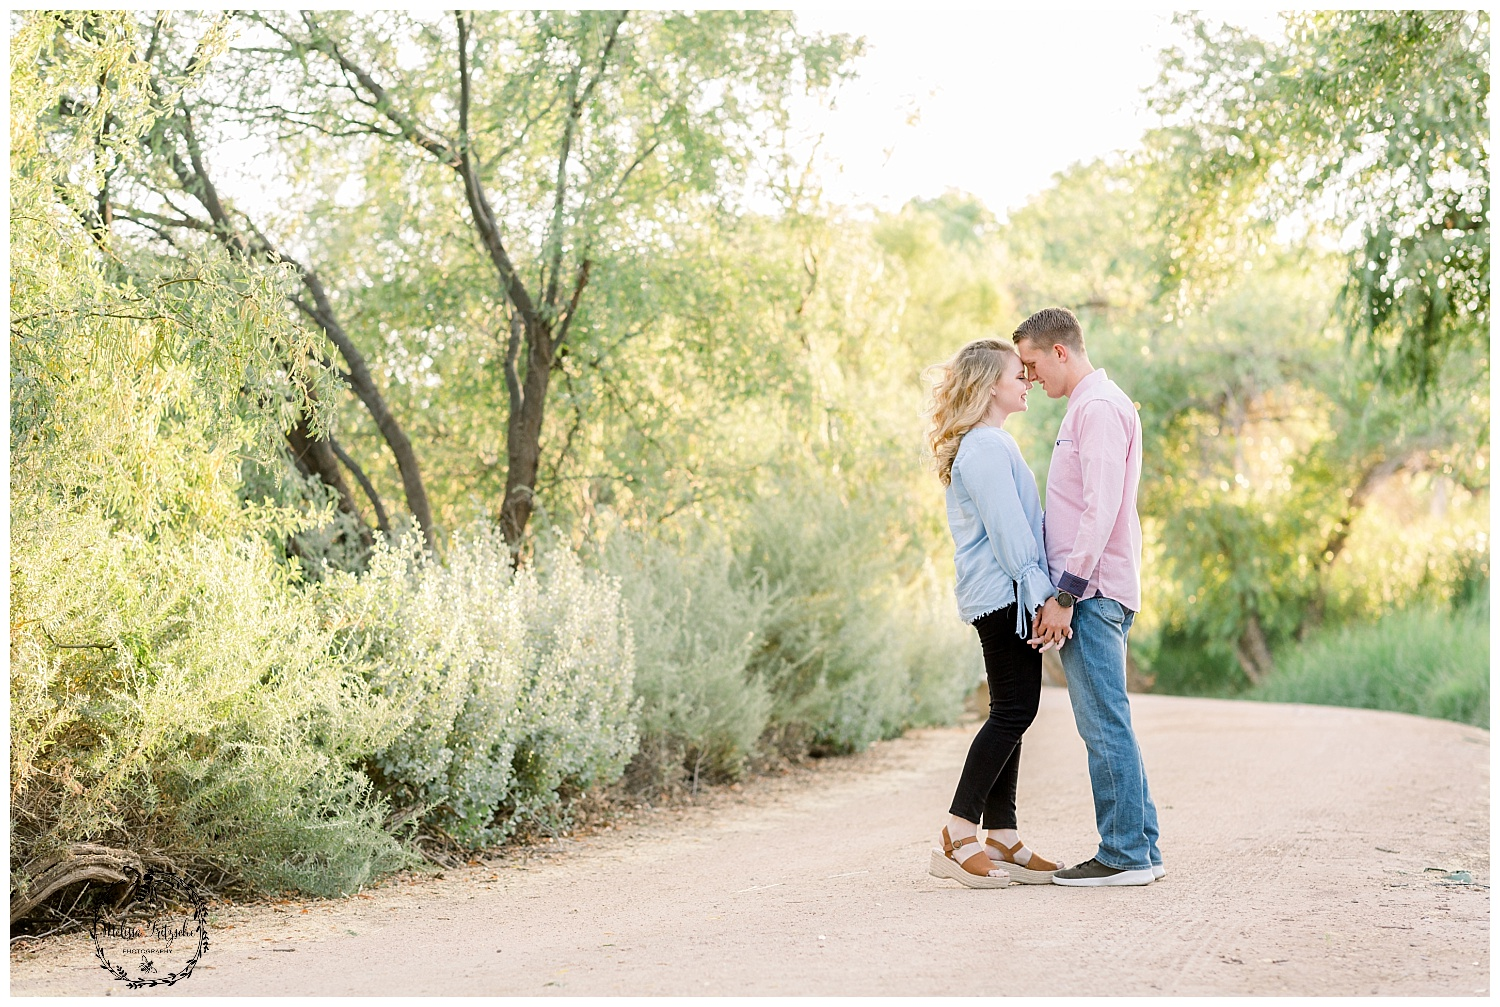 Tucson Engagement Session- Trasea & Luke_0009.jpg